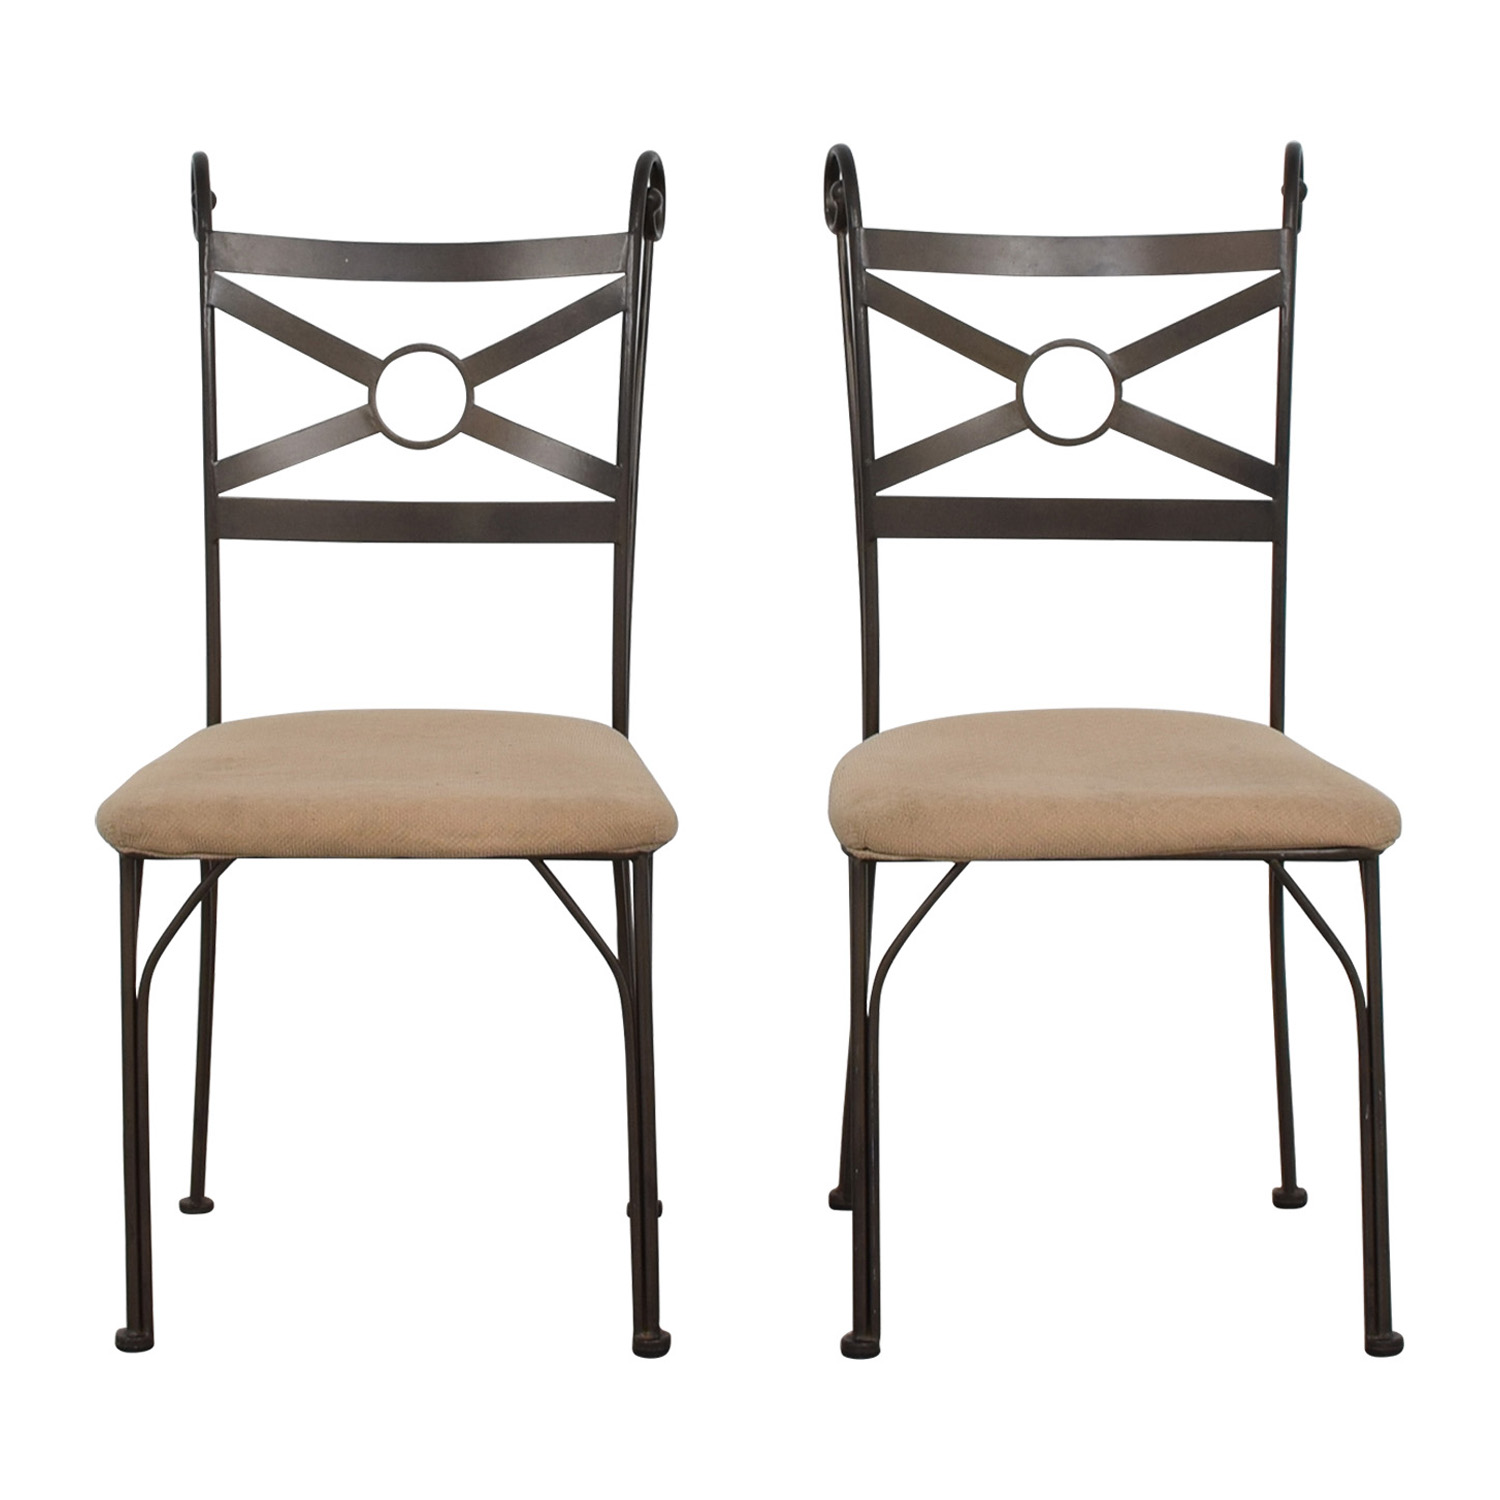 Fabric and Metal Chairs dimensions